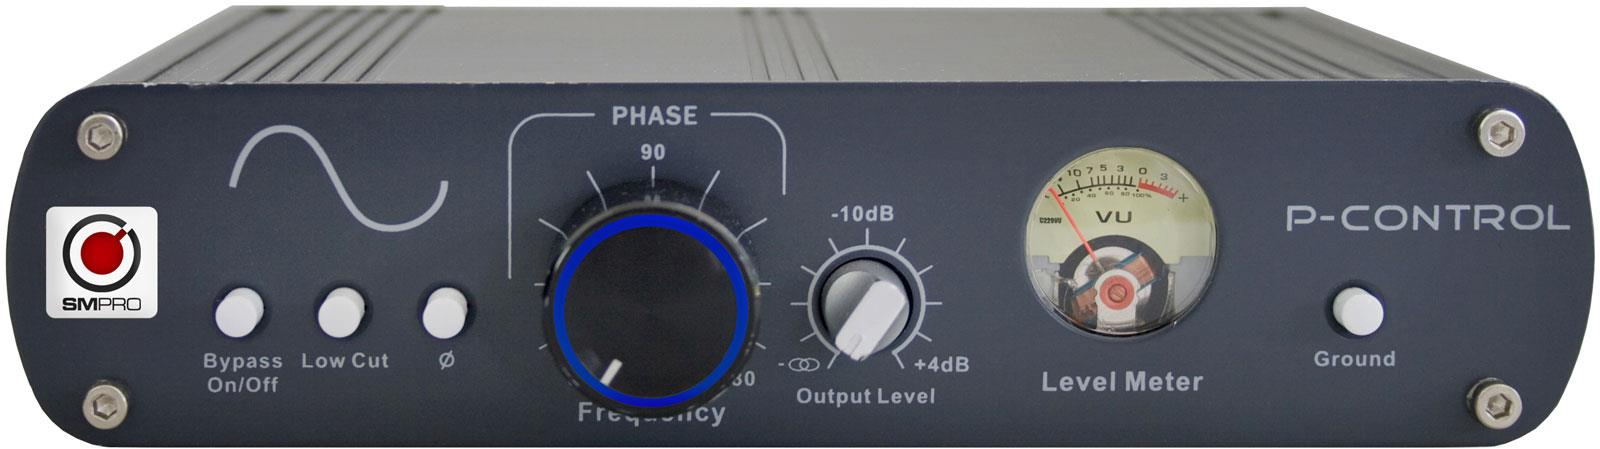 Studio Phase Meter : Sm pro audio p control adjustable phase controller keymusic